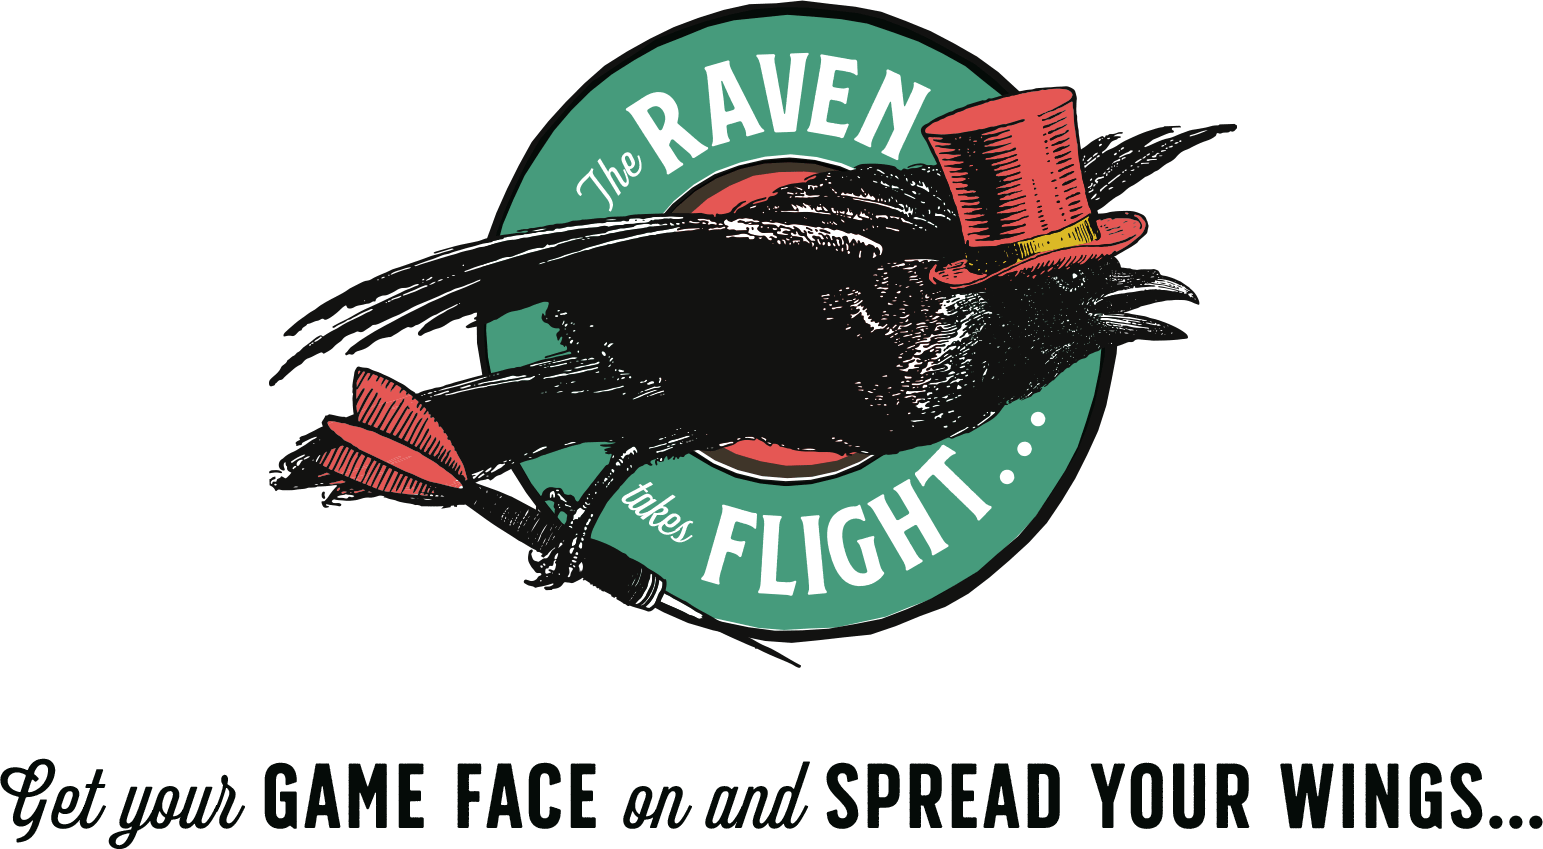 Take Flight at the Raven